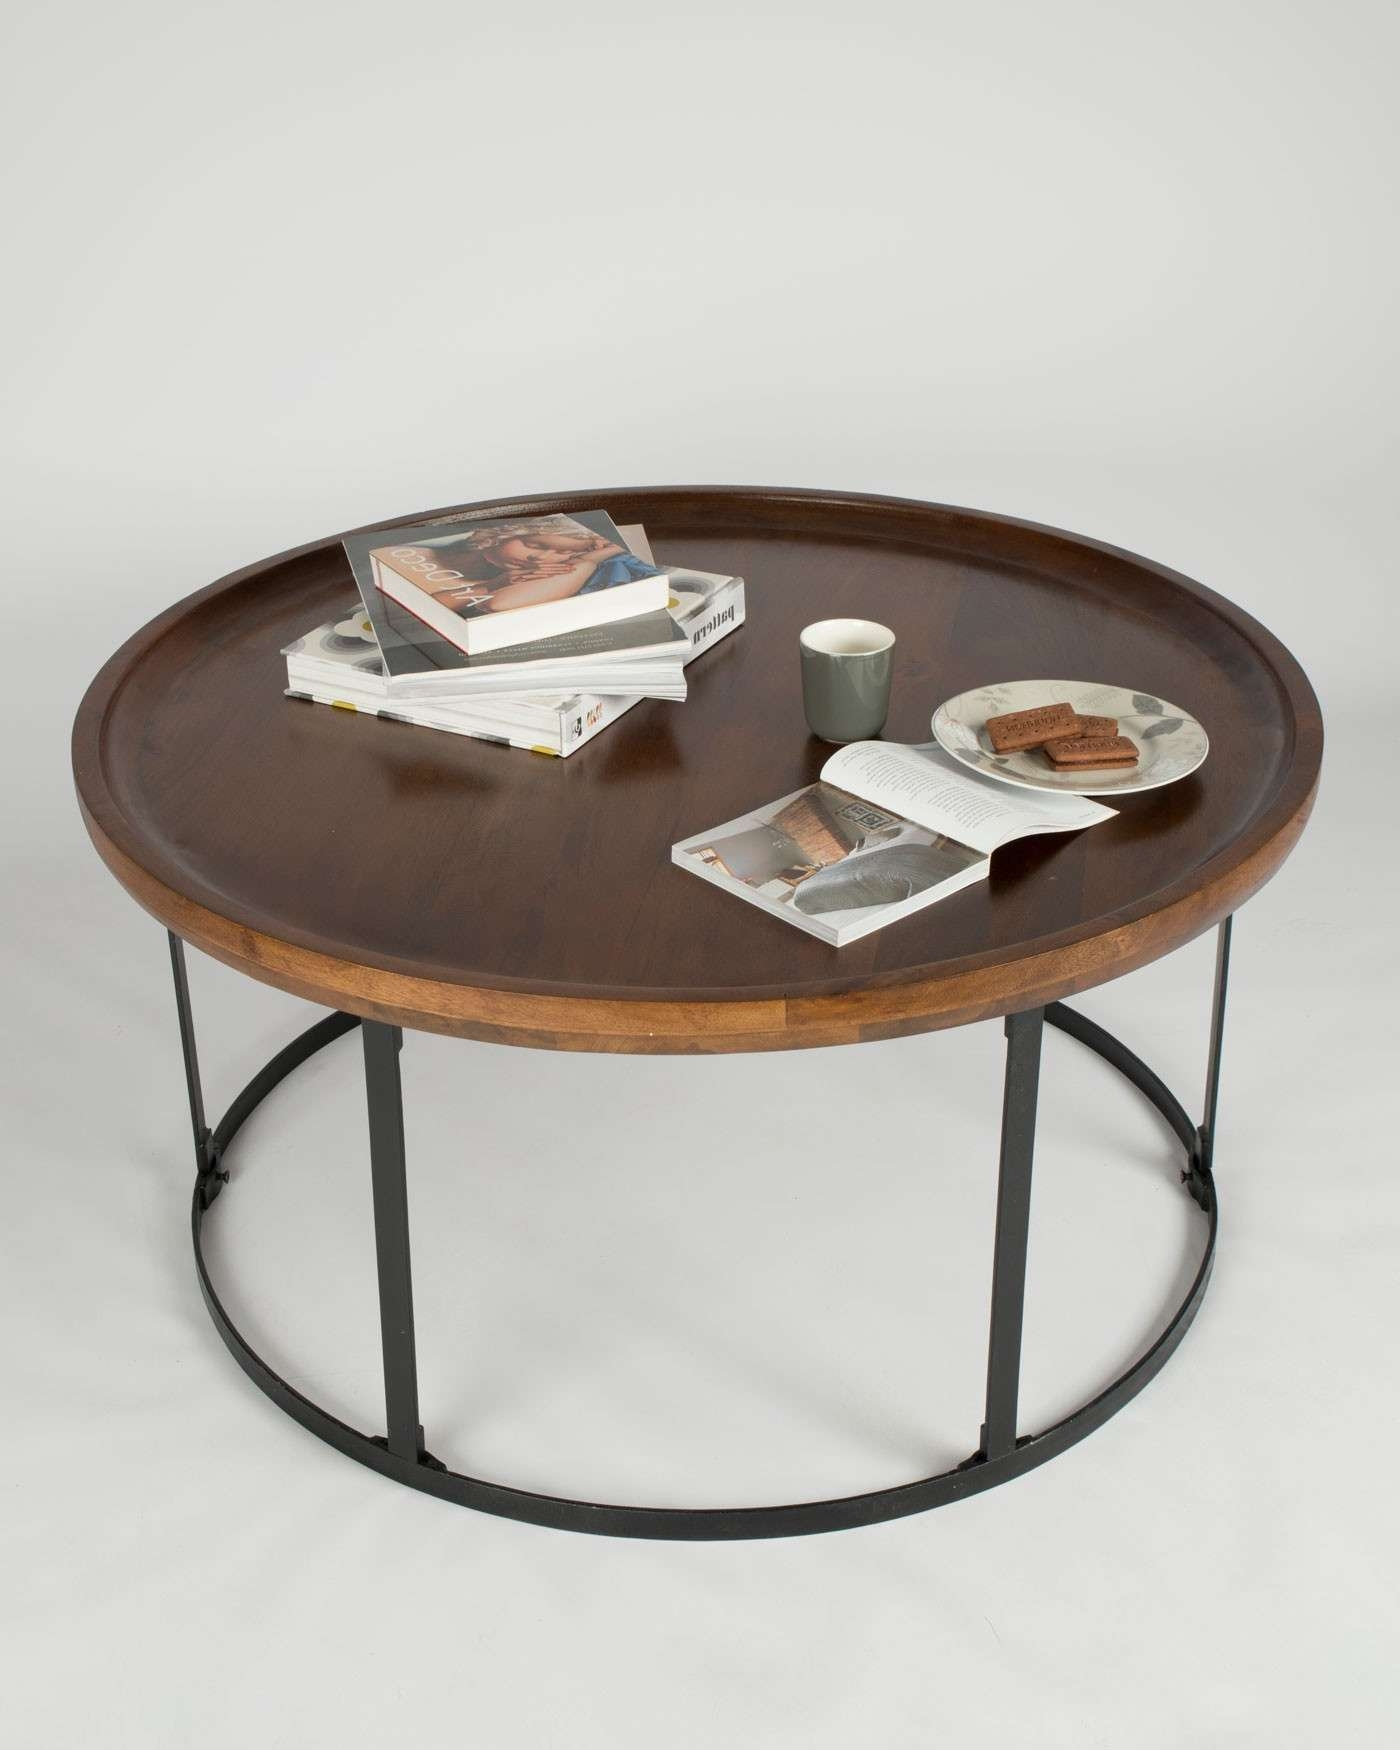 Coffee Table : Wonderful Tea Table Online Low Coffee Table Black Inside Most Recently Released Black Circle Coffee Tables (View 15 of 20)